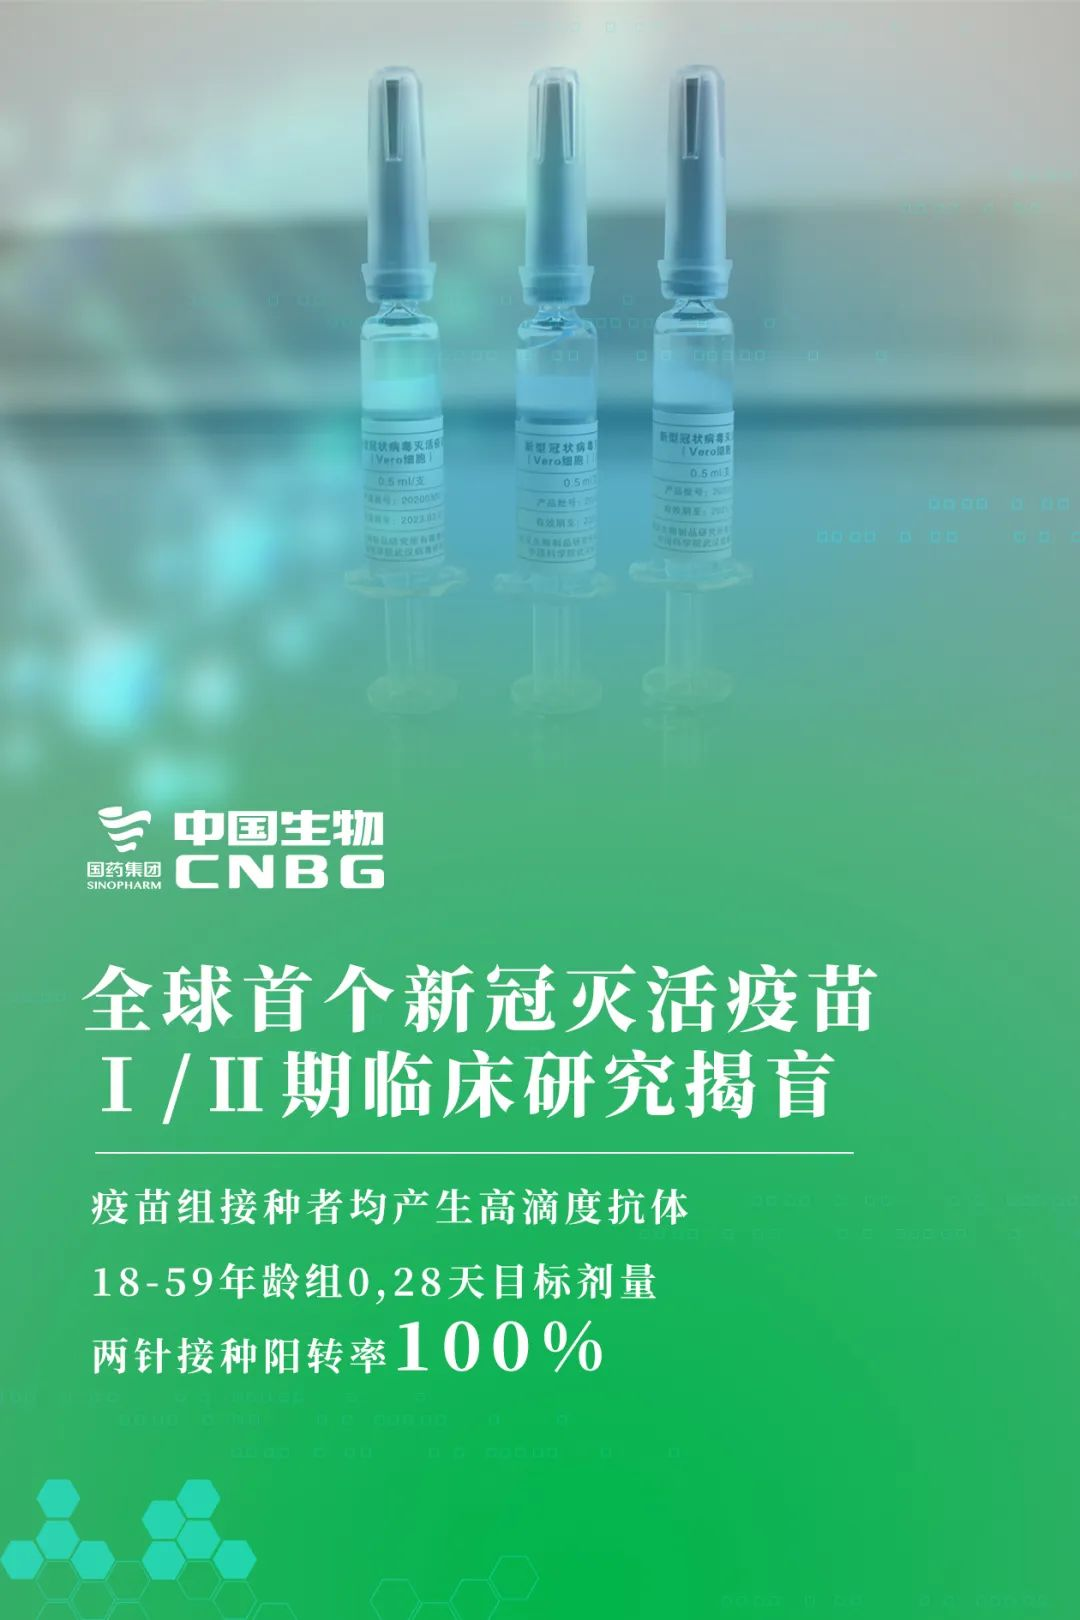 Help to fight the epidemic 丨Wusheng Institute